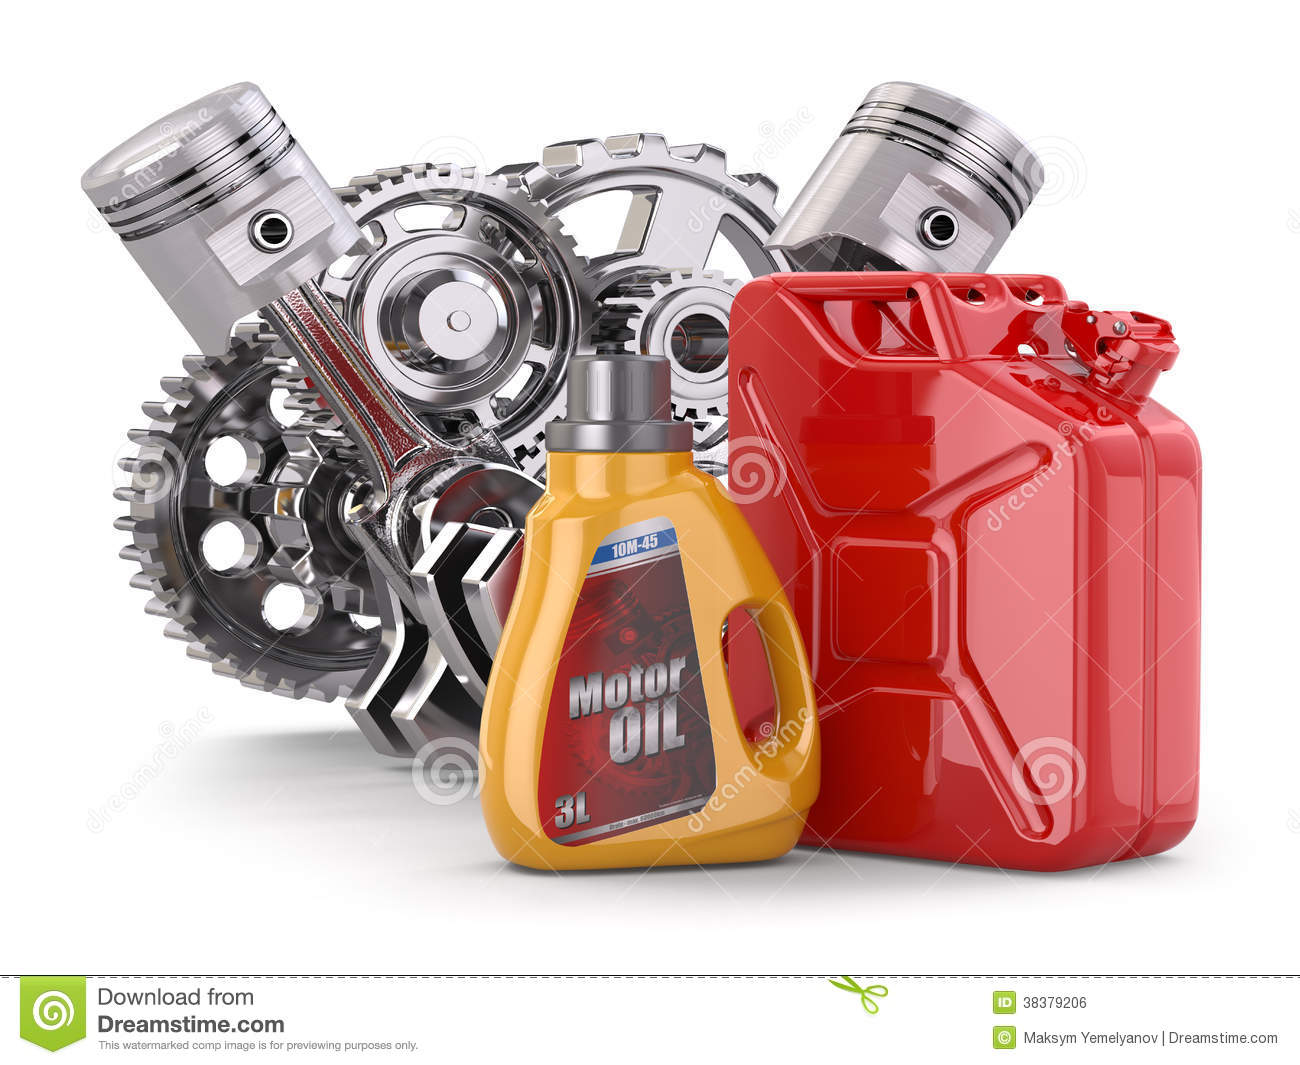 Engine, motor oil canister and jerrycan.